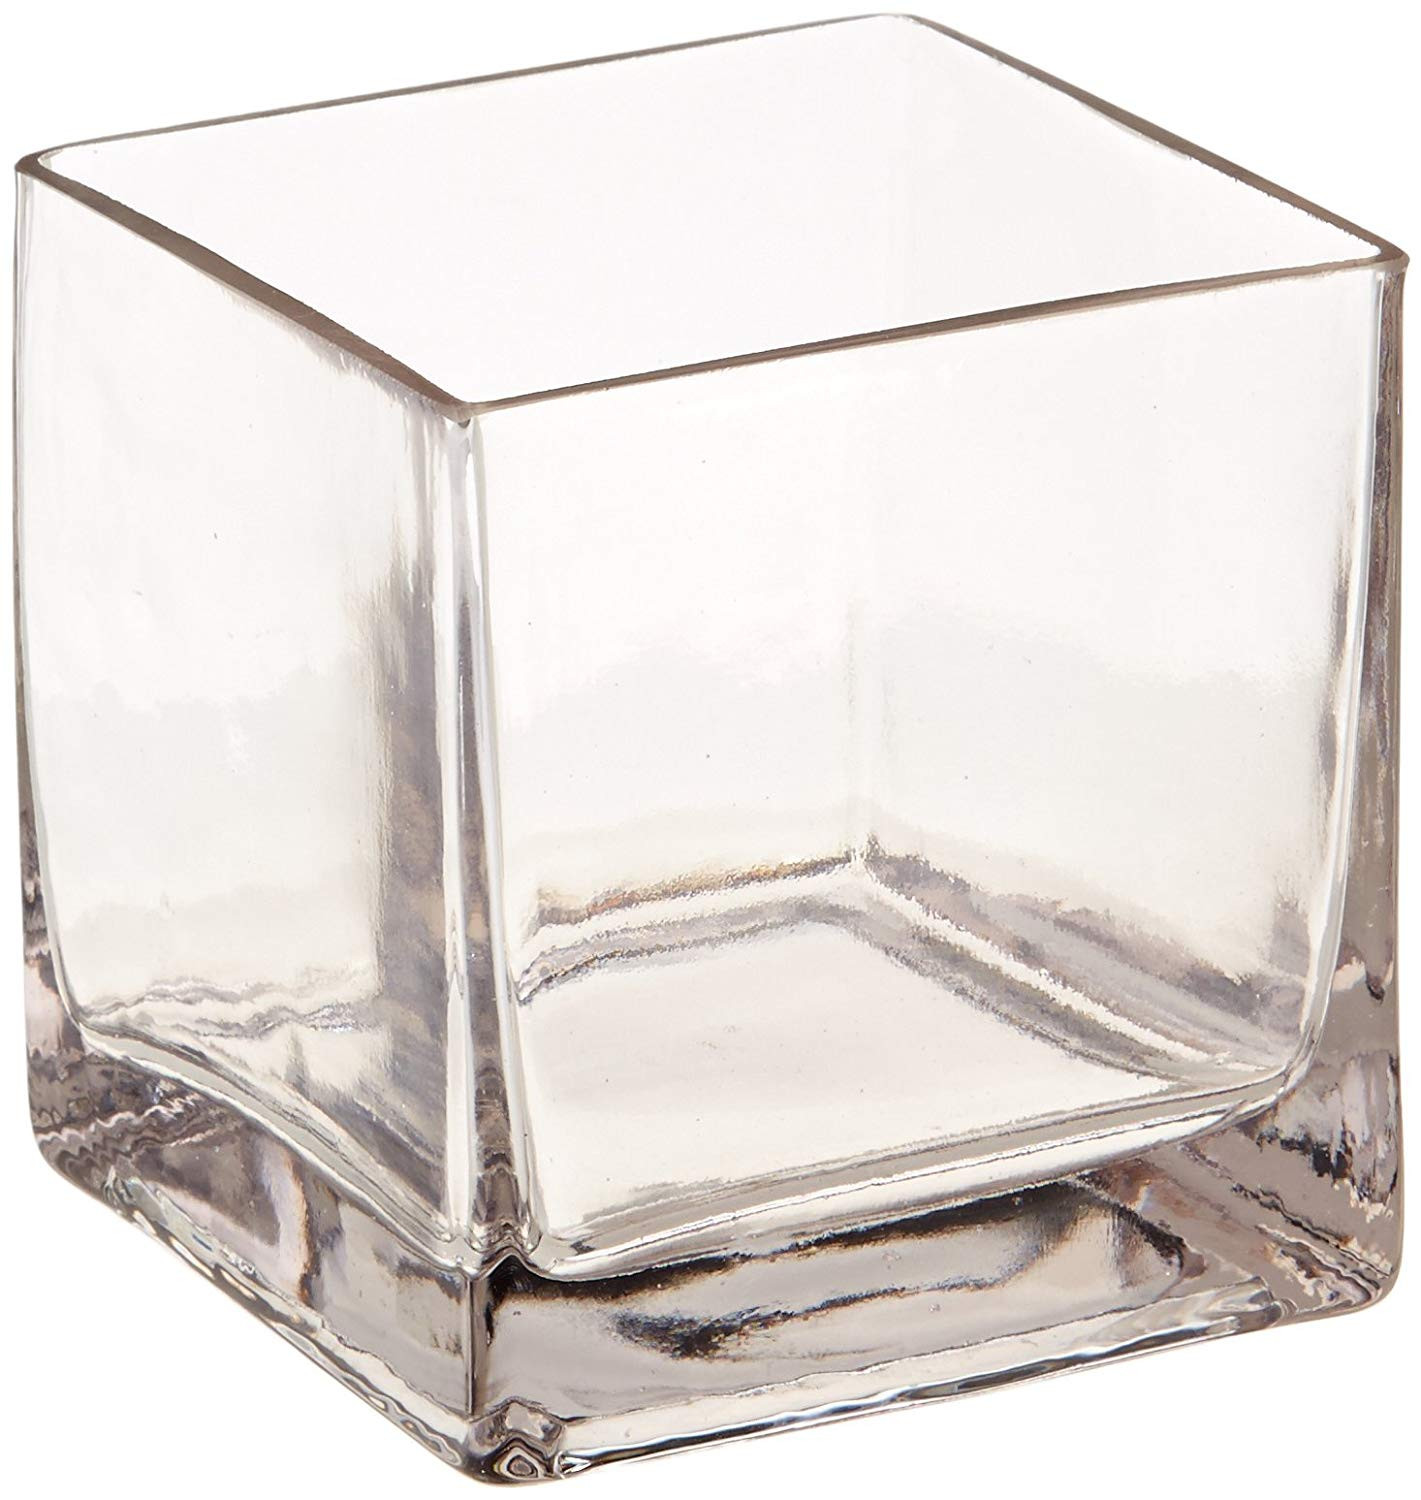 6 glass cube vase of amazon com 12piece 4 square crystal clear glass vase home kitchen throughout 71 jezfmvnl sl1500